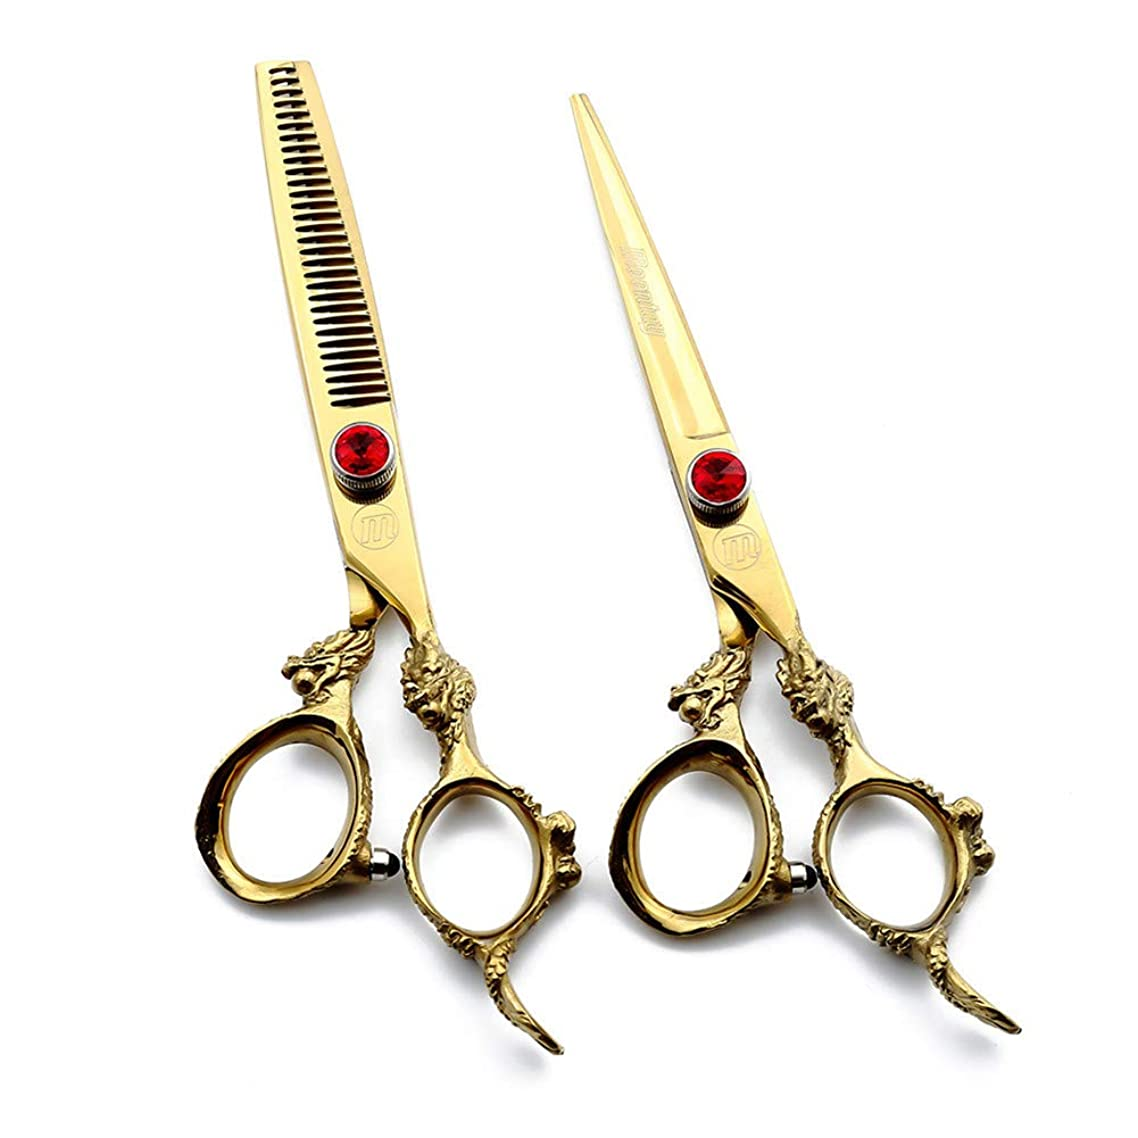 TAOUN Hairdressing Scissors Barber Shears 6 Inch Professional Dragon Handle Hair Cutting/thinning Shears for Salon Barber or Home